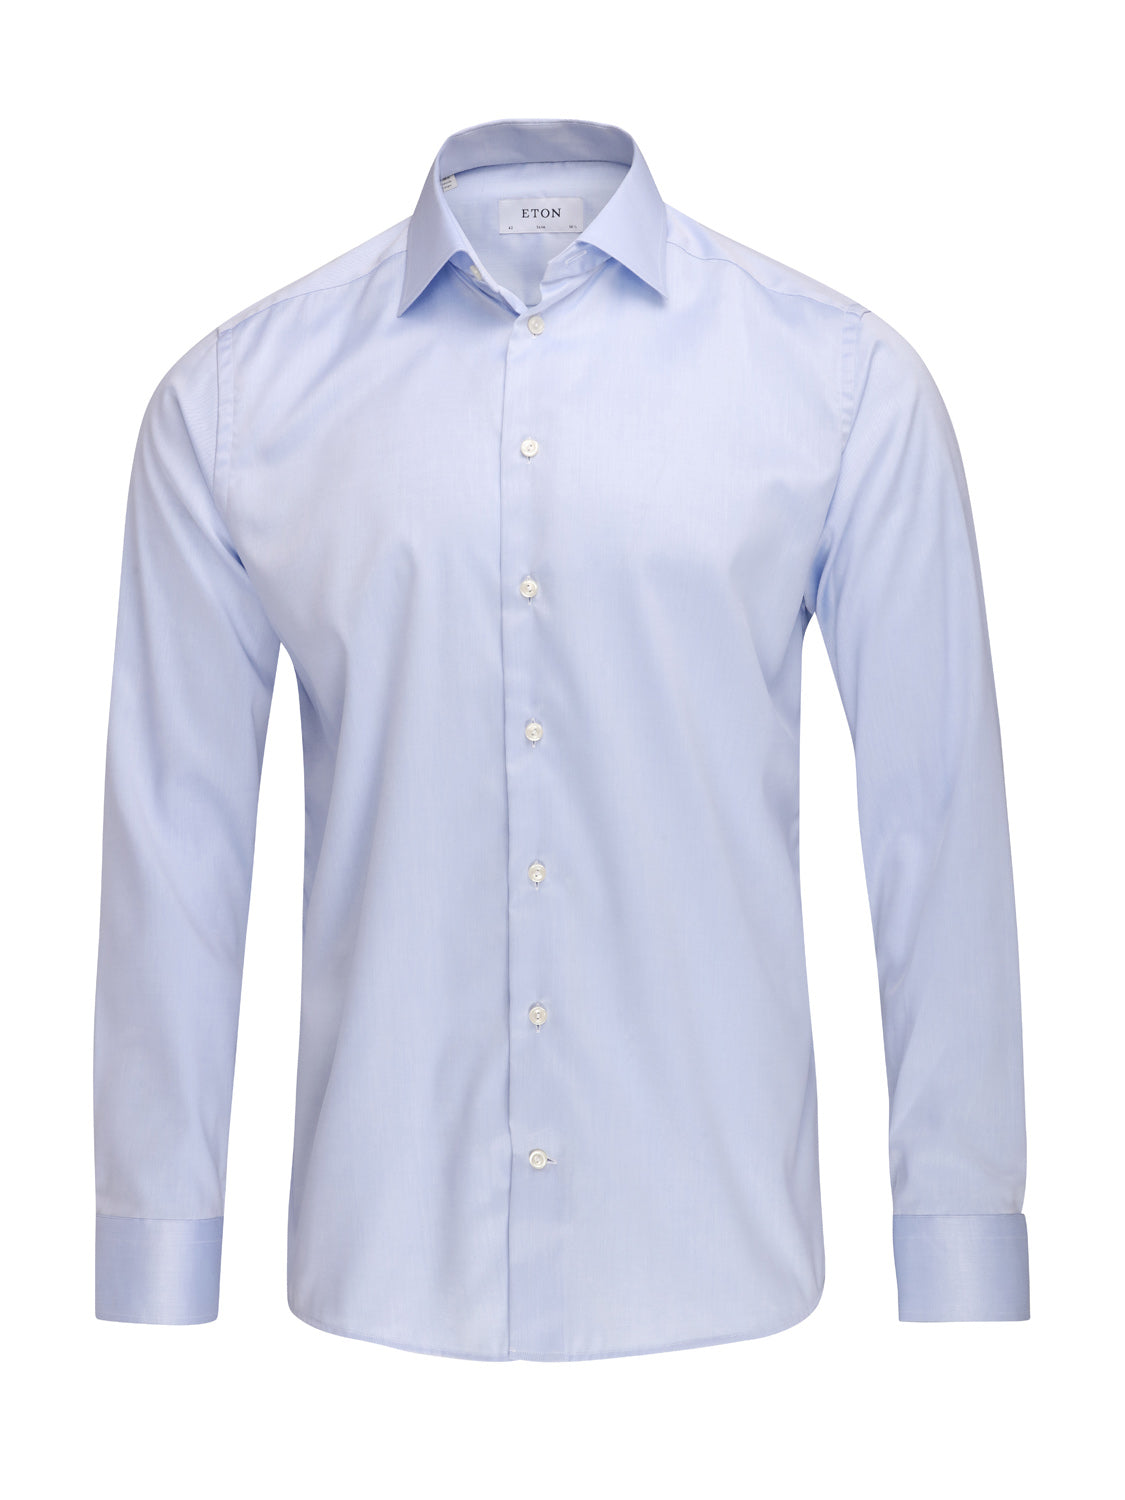 ETON Slim Fit Pointed Collar Shirt (Light Blue)